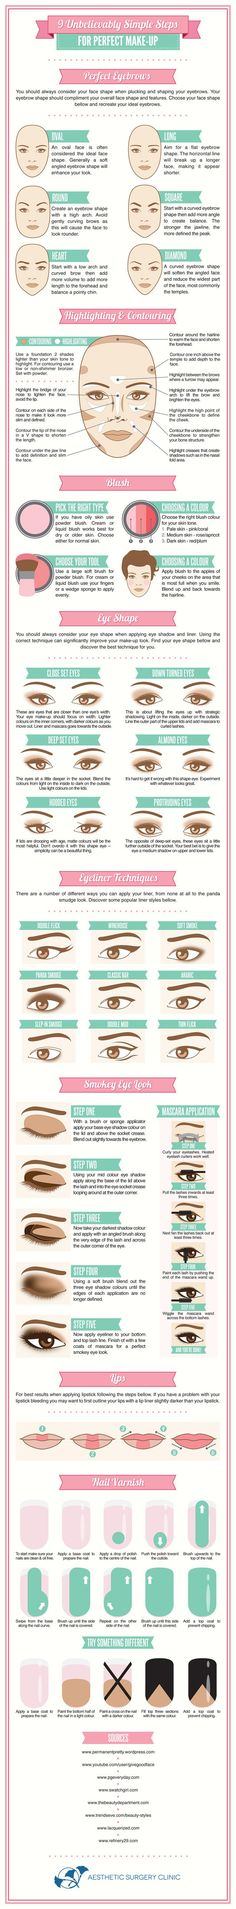 Infographic helps you master the perfect make-up   Stylist Magazine